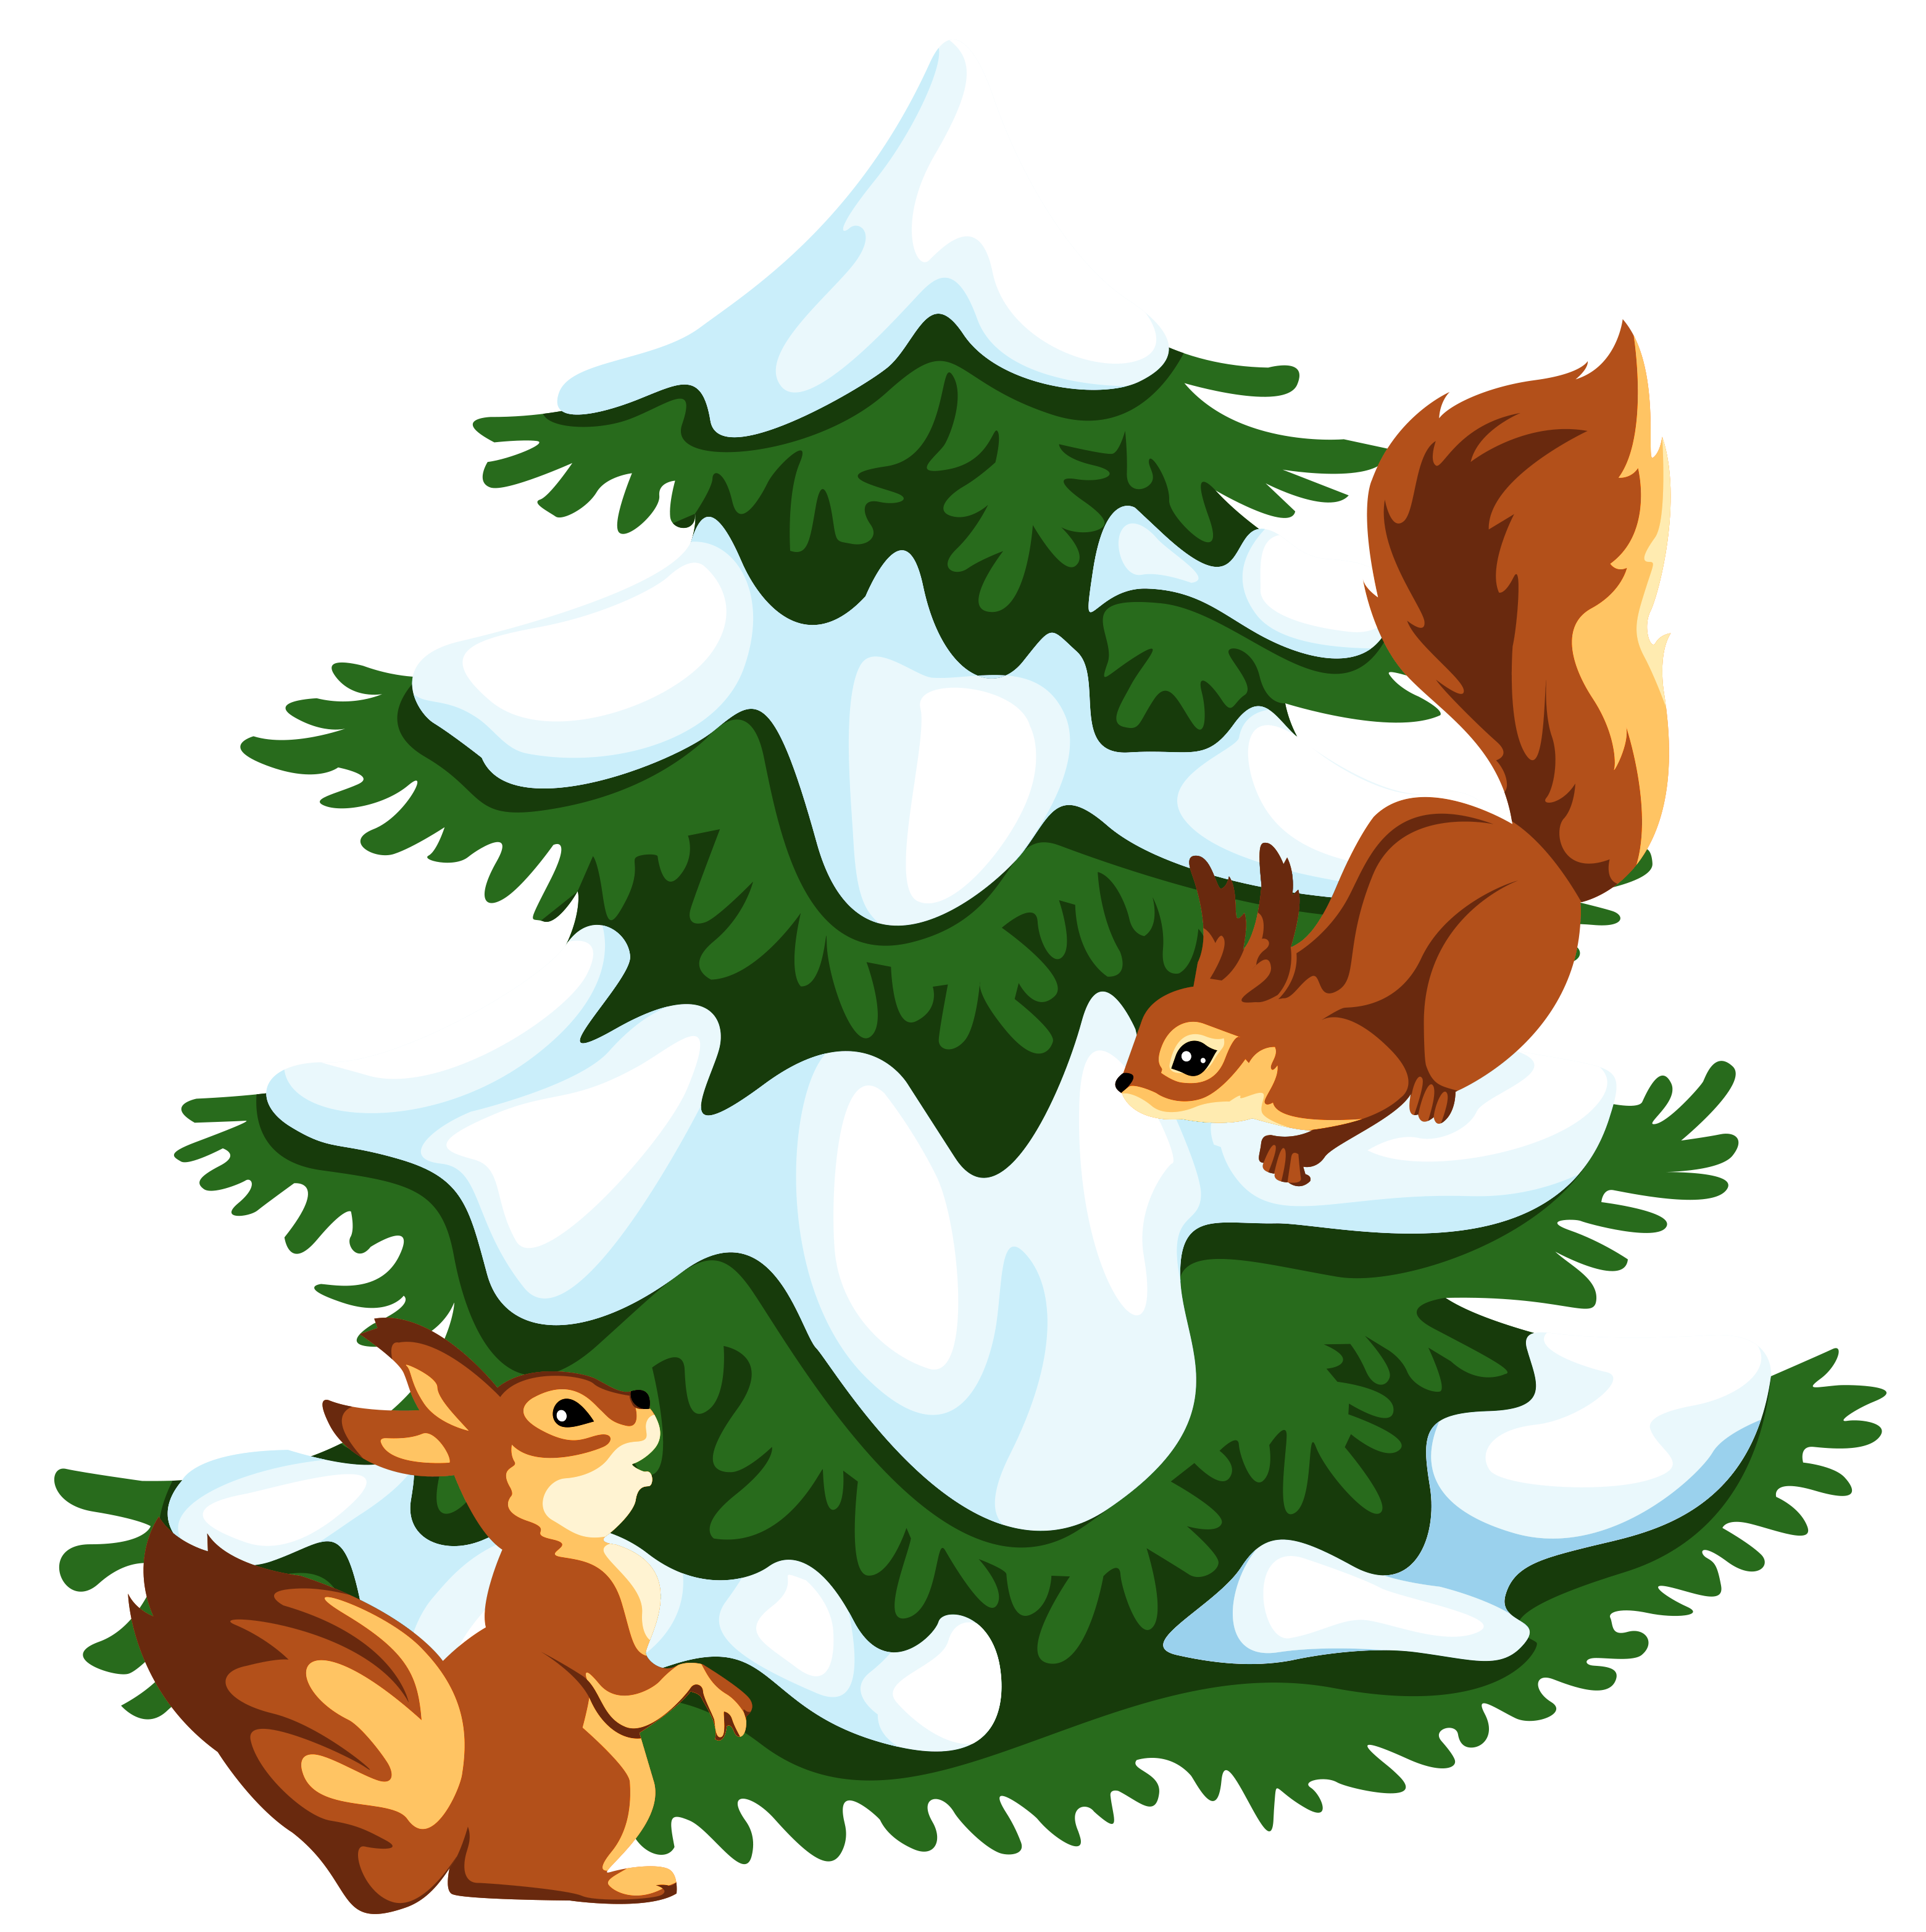 Christmas squirrel clipart clip freeuse library Transparent Snowy Tree with Squirrels PNG Clipart | Gallery ... clip freeuse library